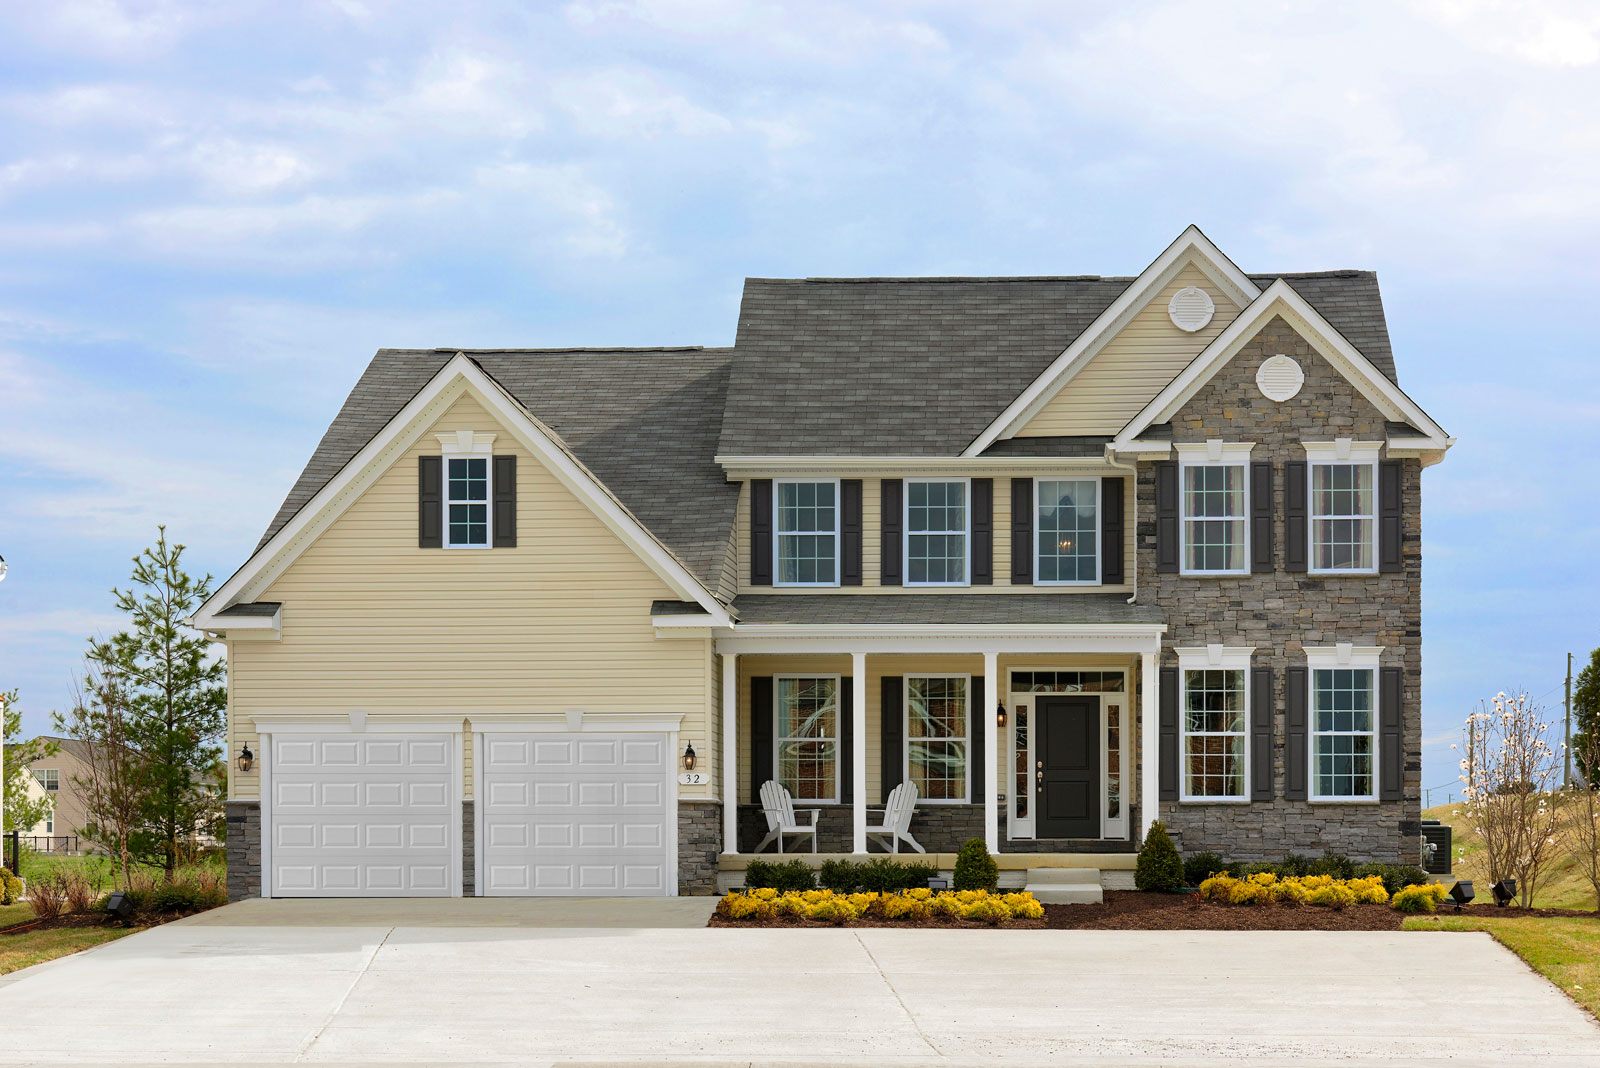 Townhomes, Single Family & Estate Homes